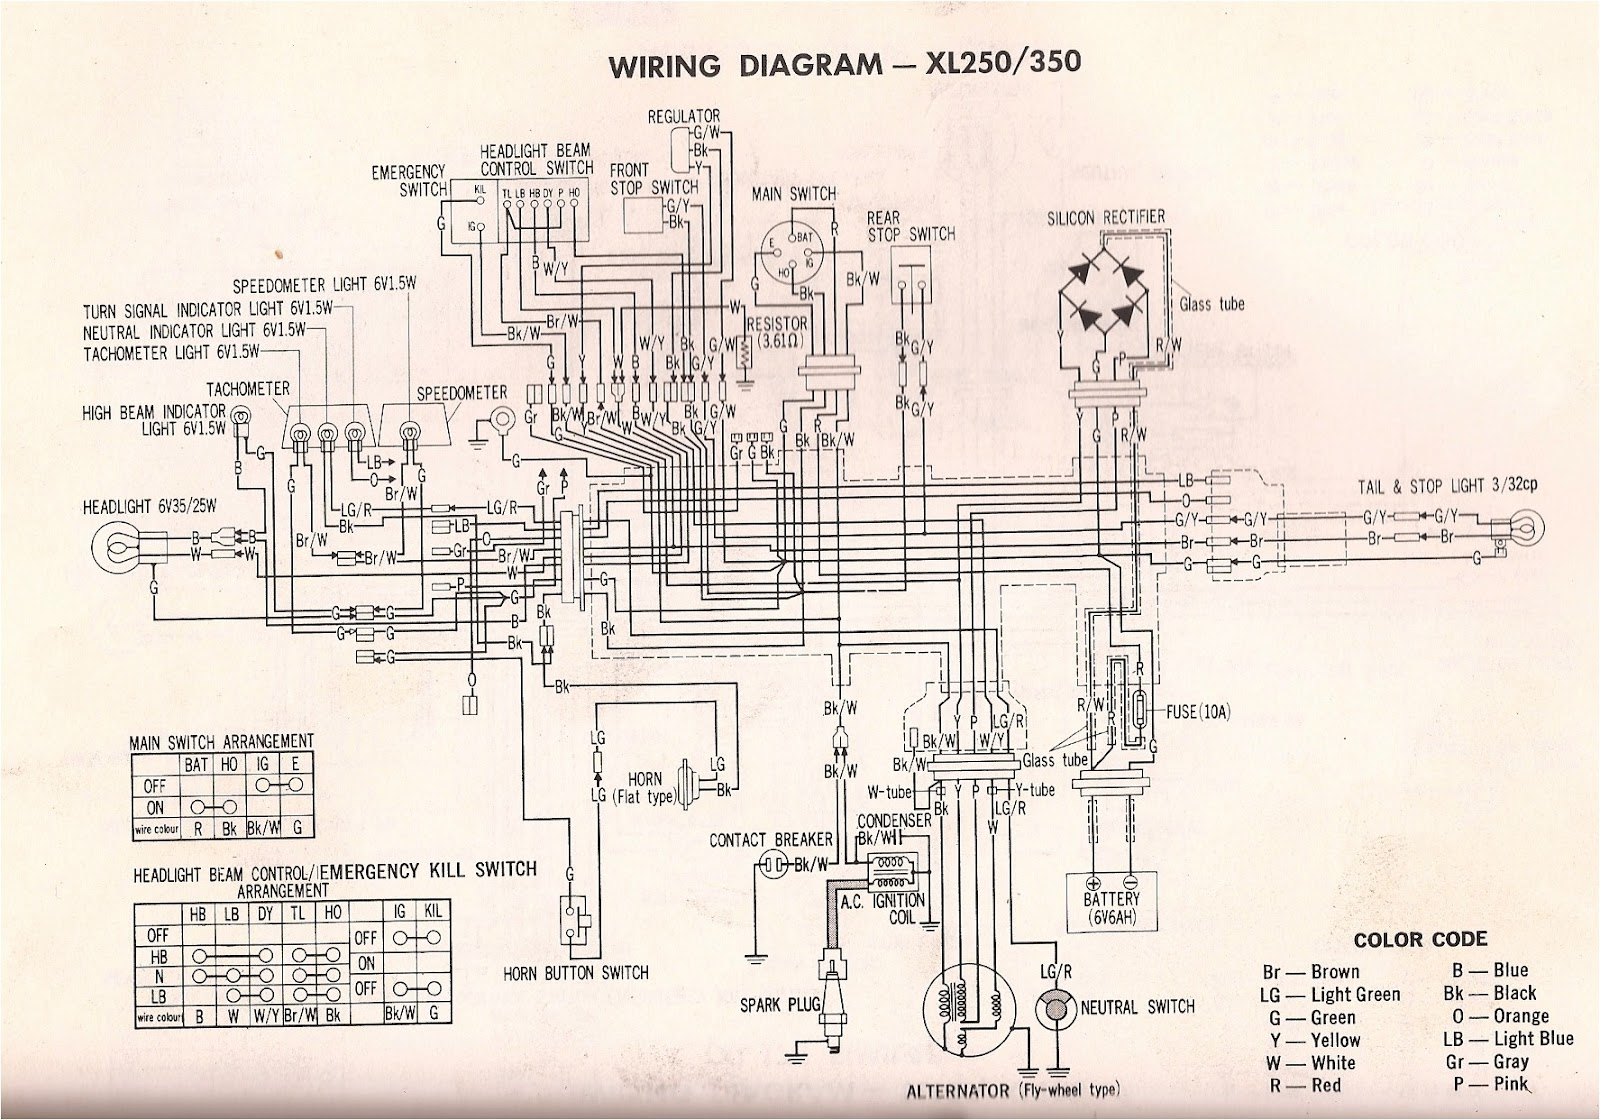 XL350+Wiring+diagram+S r4l xl350 wiring diagram (and xl250) honda ct90 wiring diagram at n-0.co